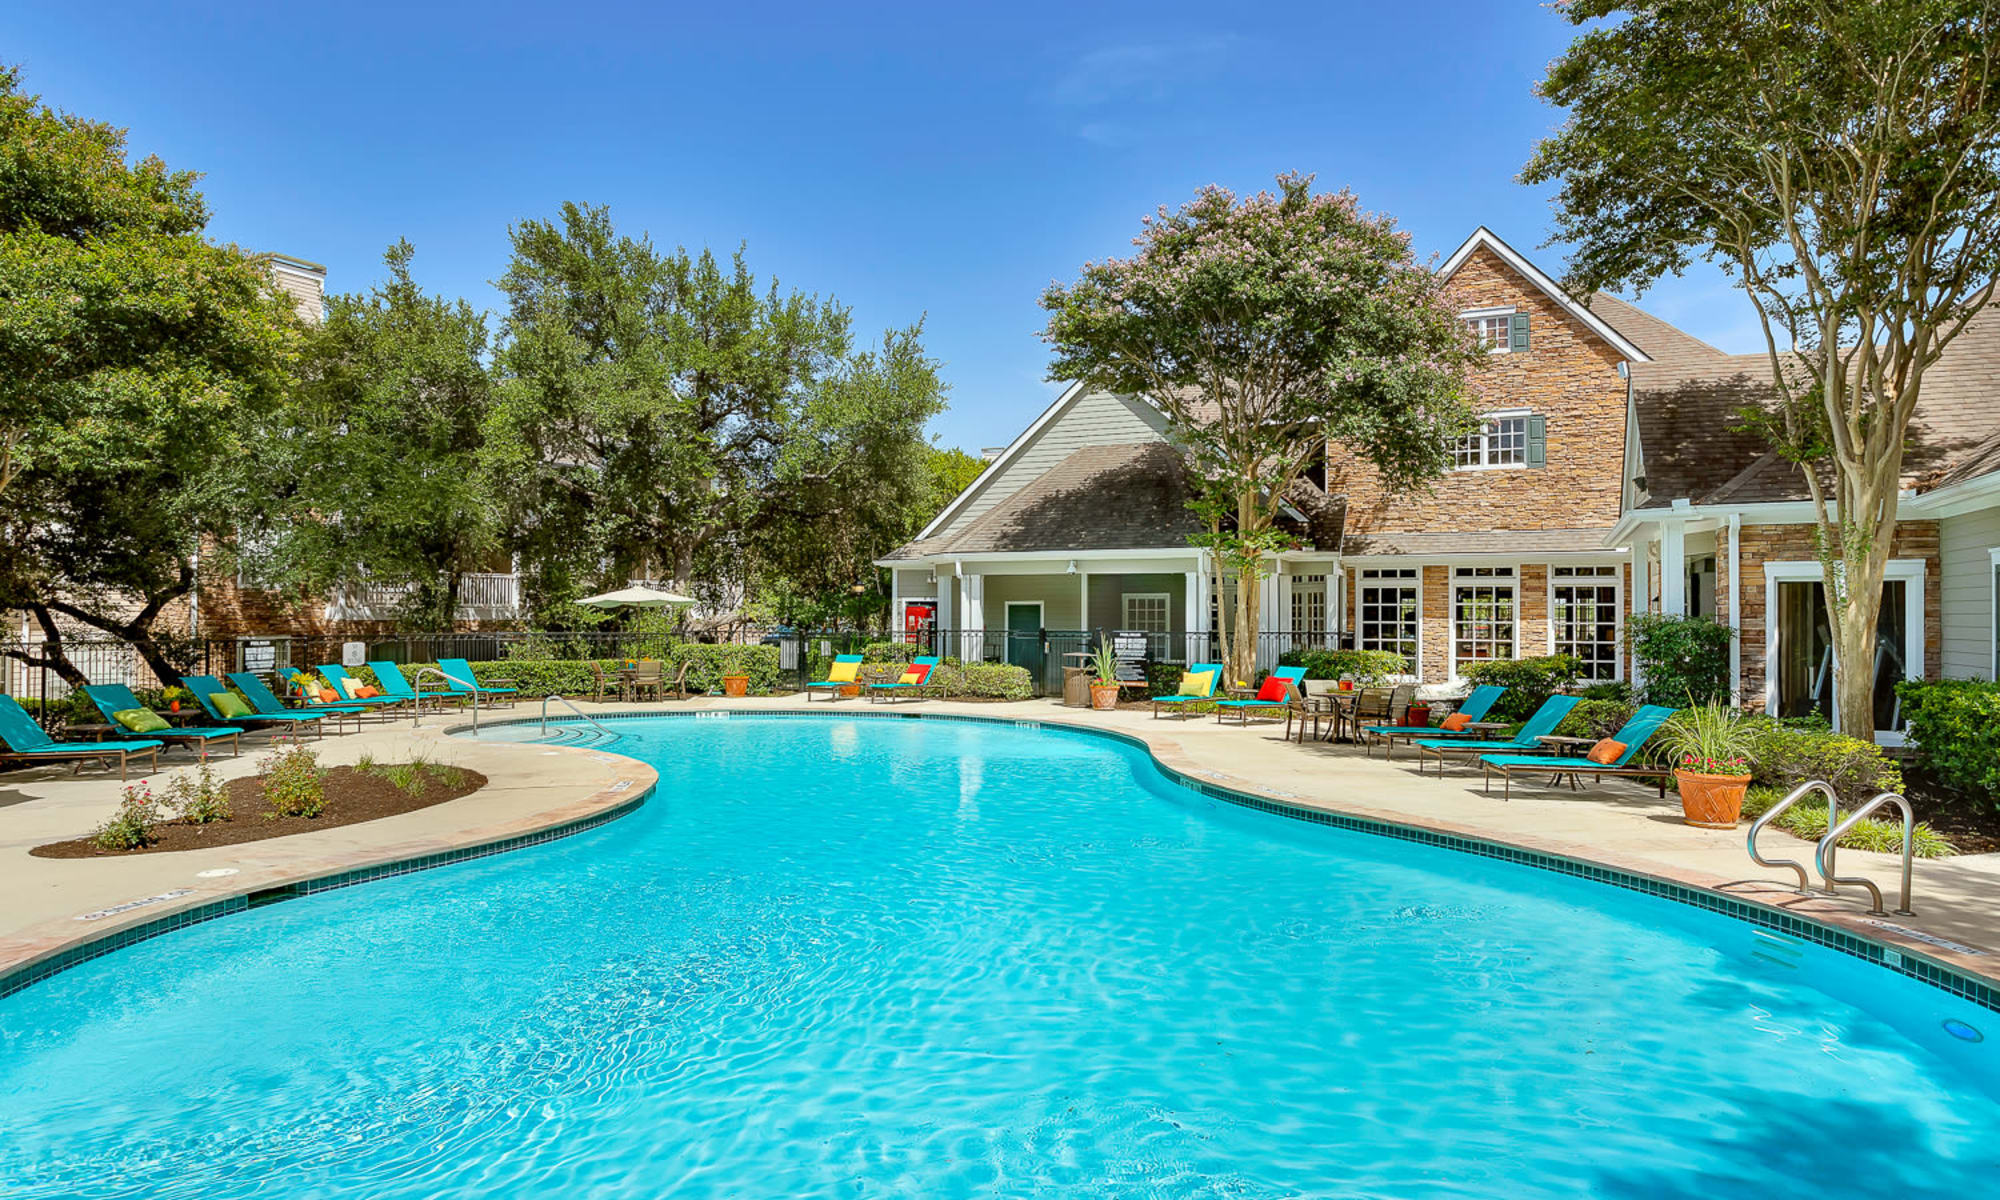 Apartments at The Lodge at Westover Hills in San Antonio, Texas